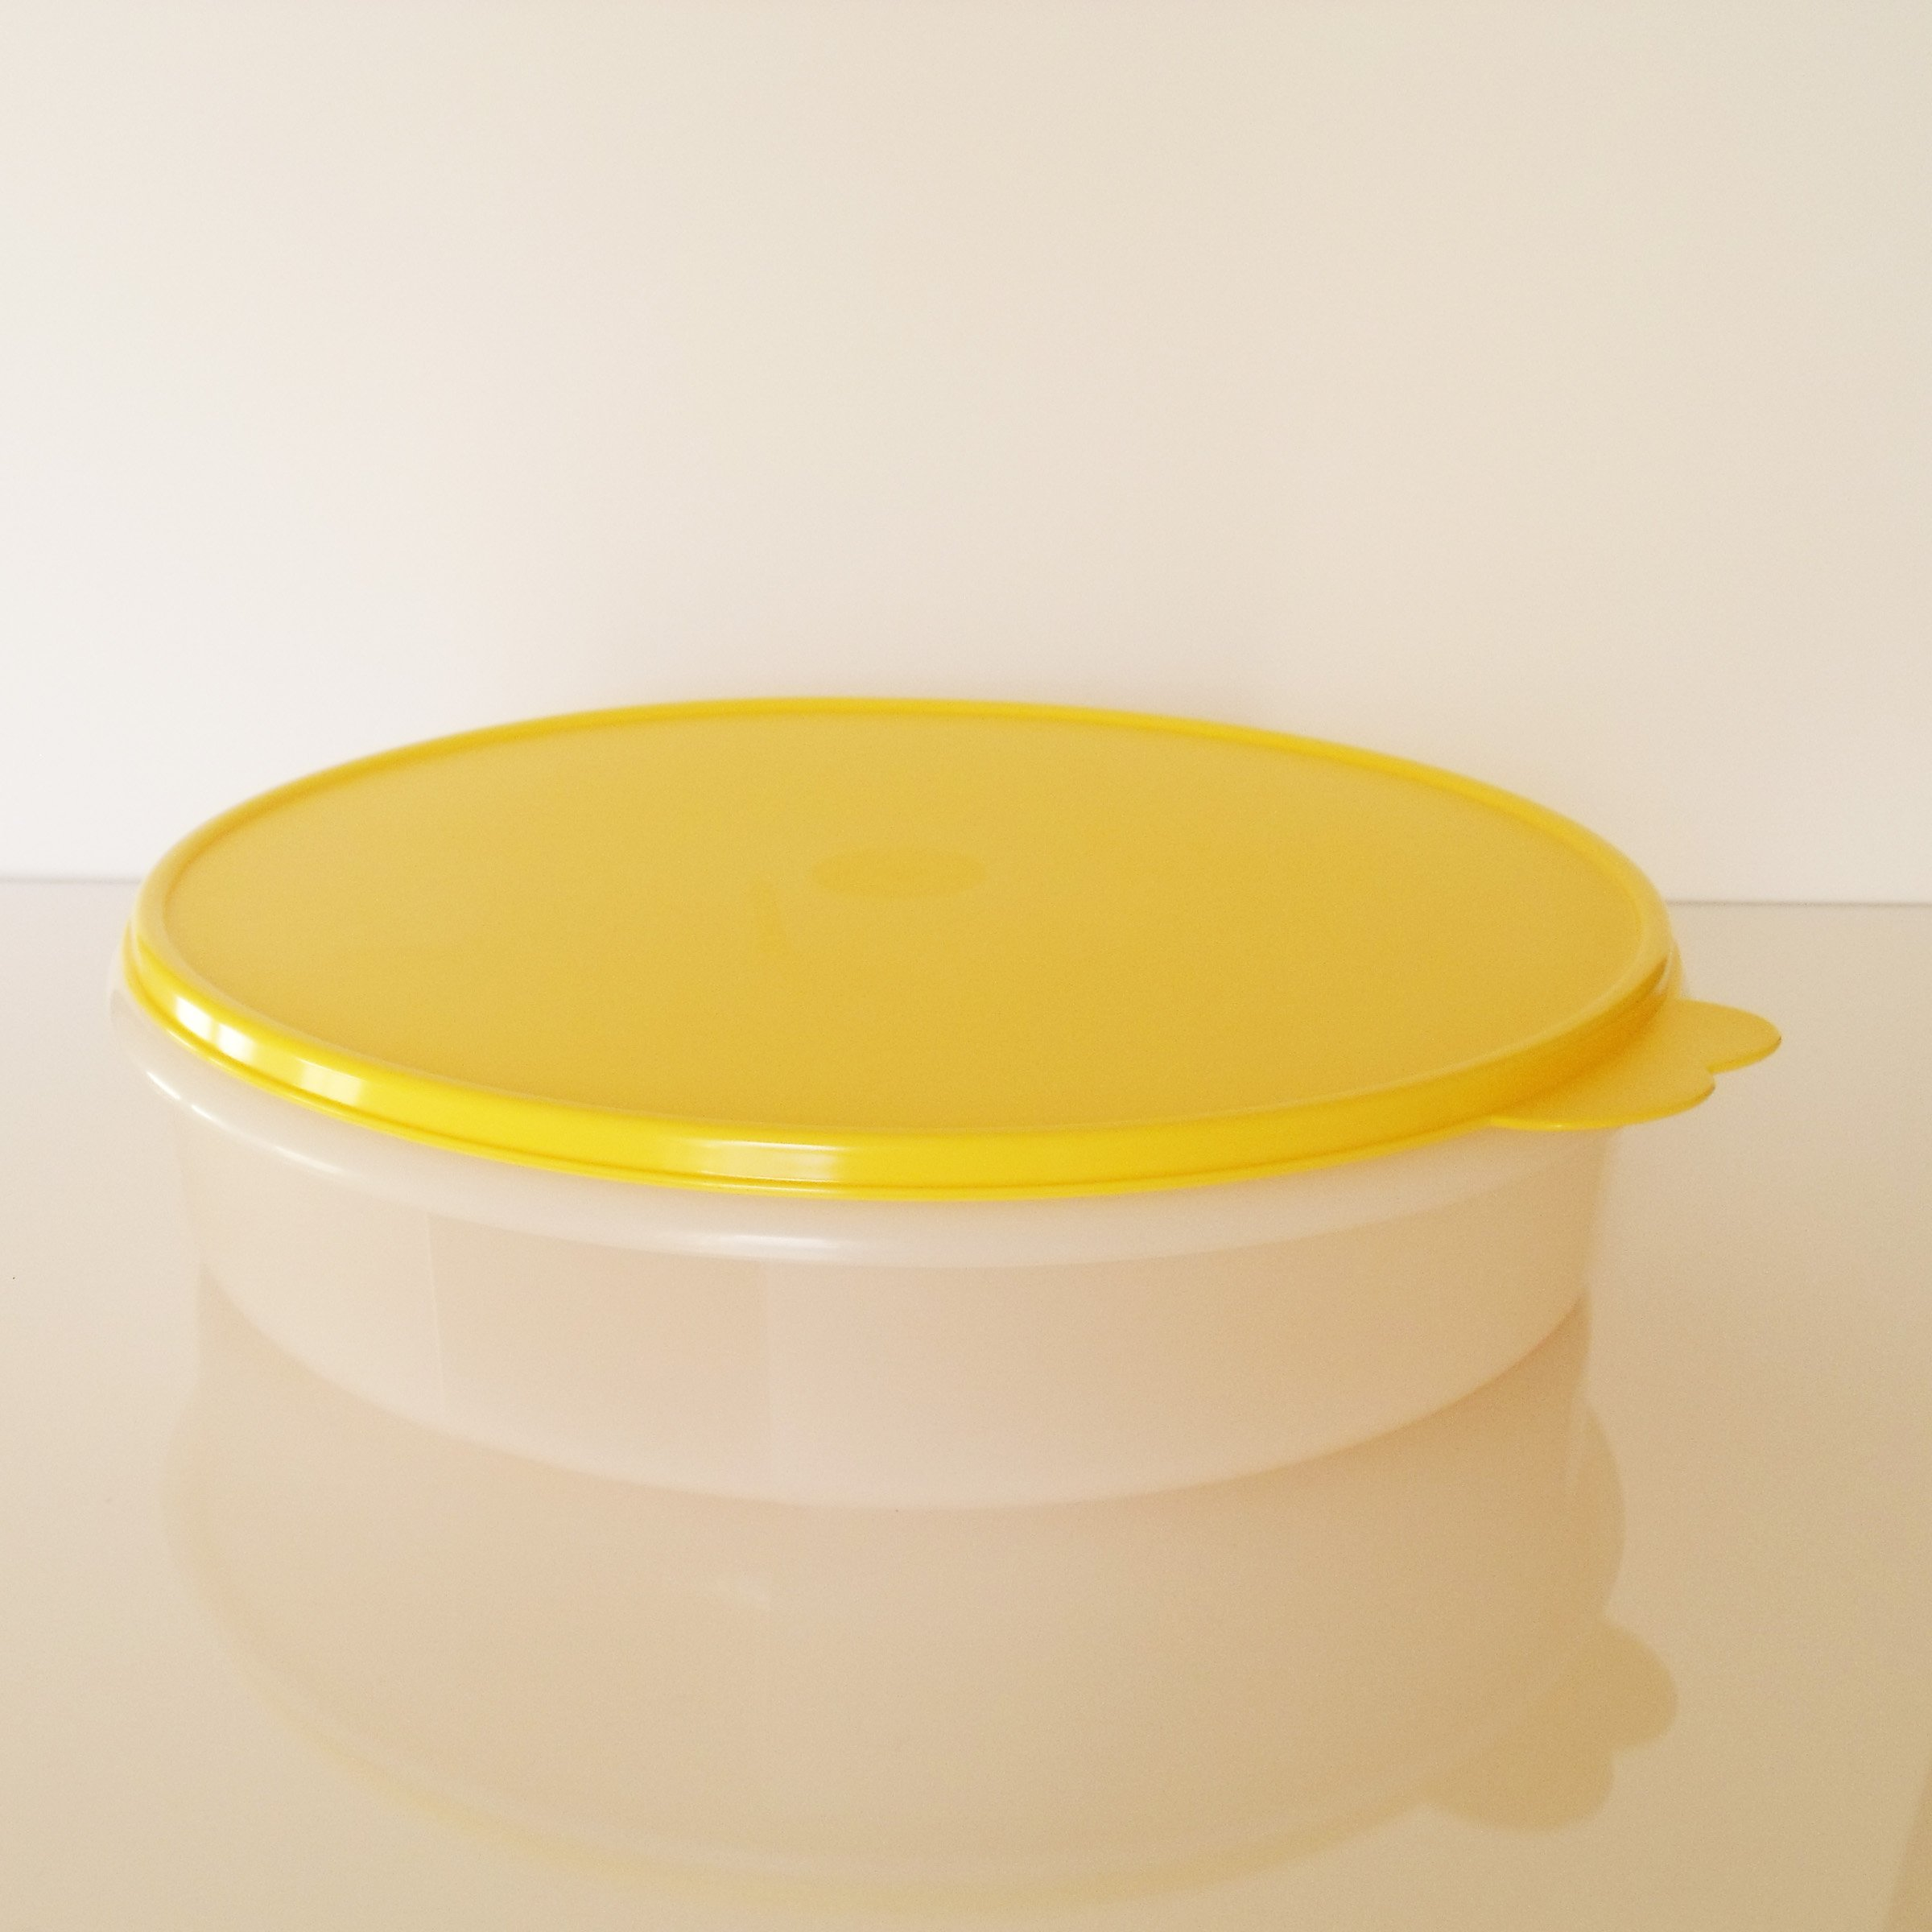 Tupperware 12'' Round Pie Keeper. White with Yellow Seal by Tupperware (Image #2)